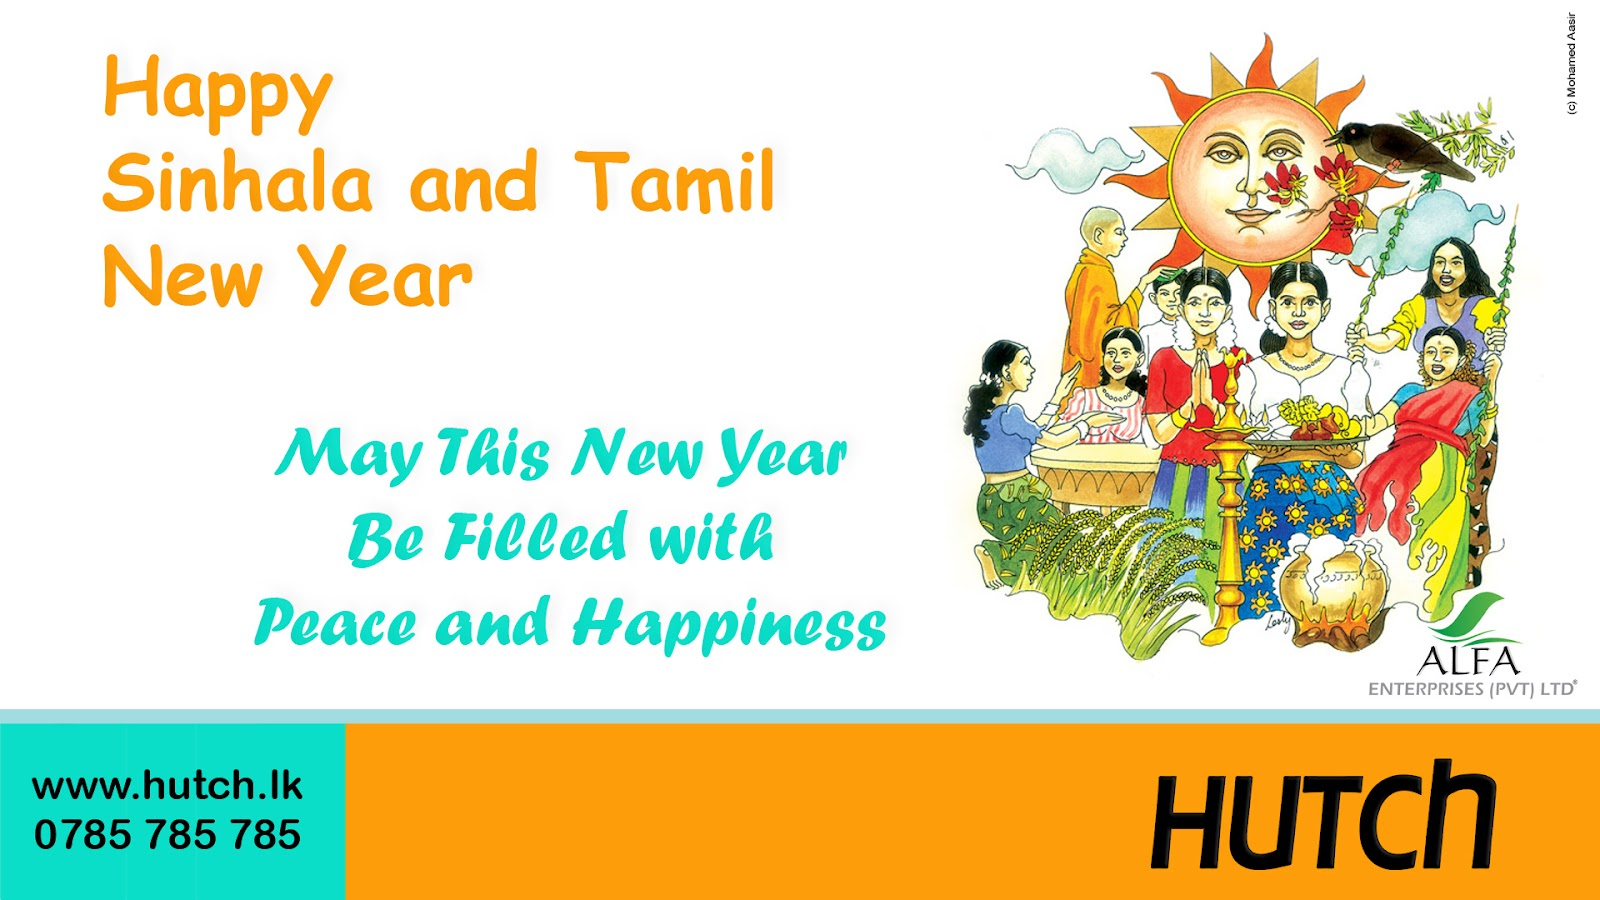 Hutch Happy Sinhala And Tamil New Year 2012